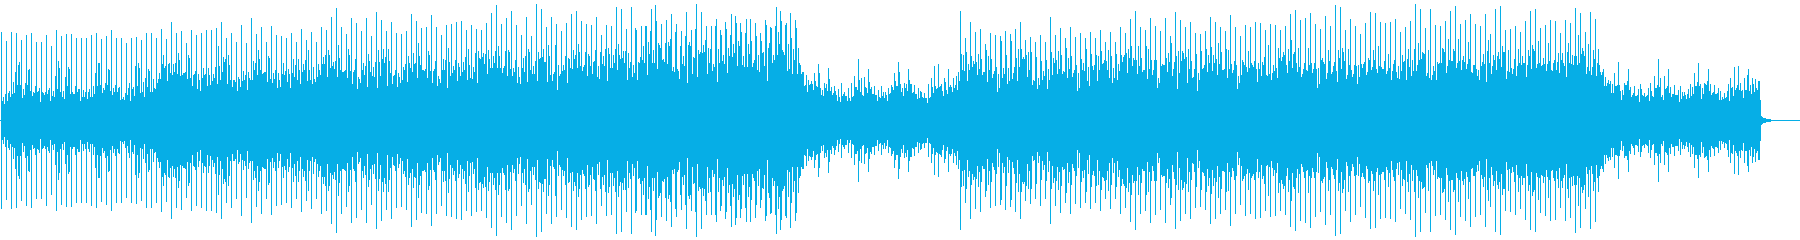 A futuristic EDM that gives you strong determination and belief's reproduced waveform